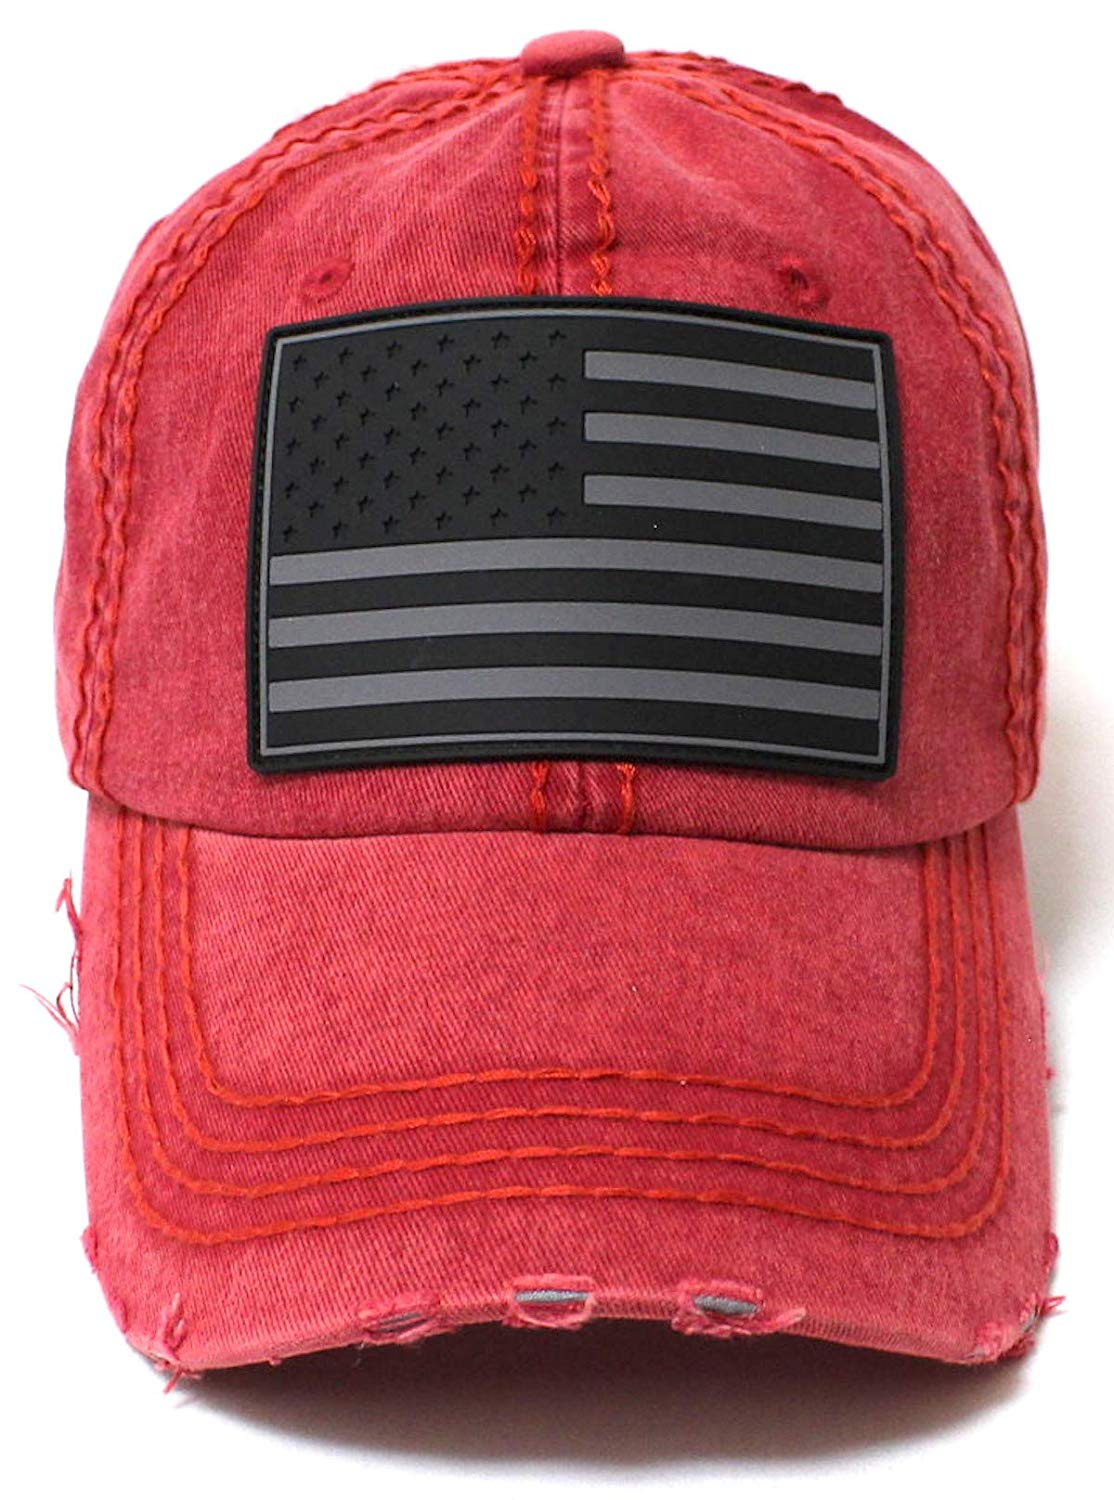 CAPS 'N VINTAGE Washed Red/Black American Flag Adjustable Baseball Hat - Caps 'N Vintage